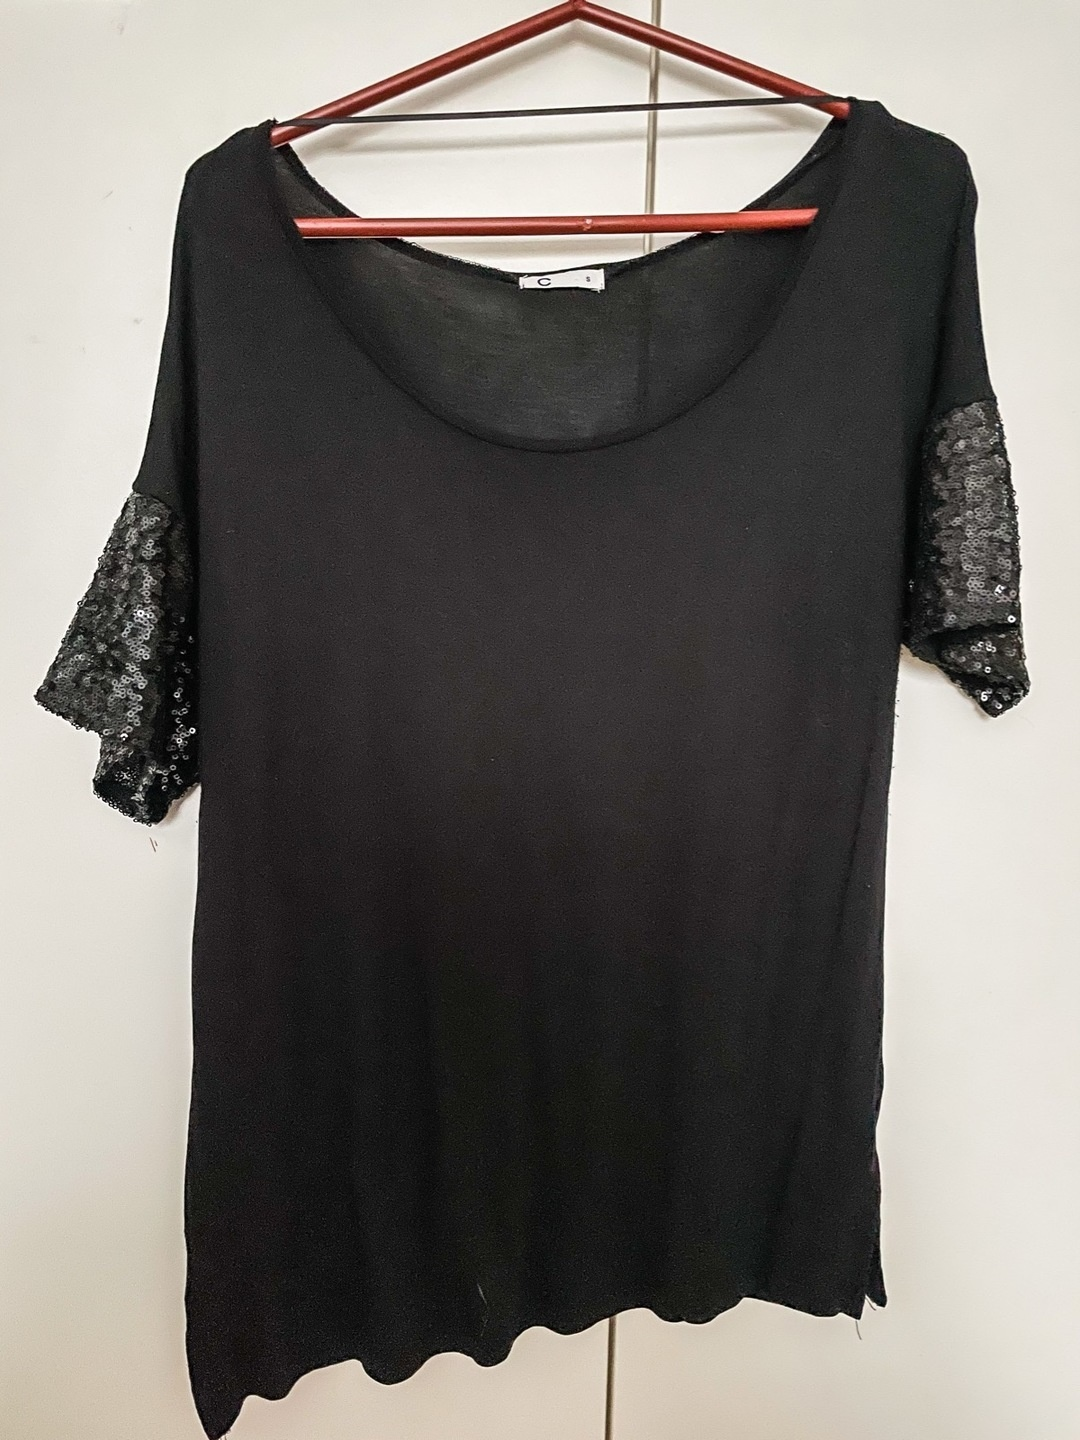 Women's tops & t-shirts - CUBUS photo 1